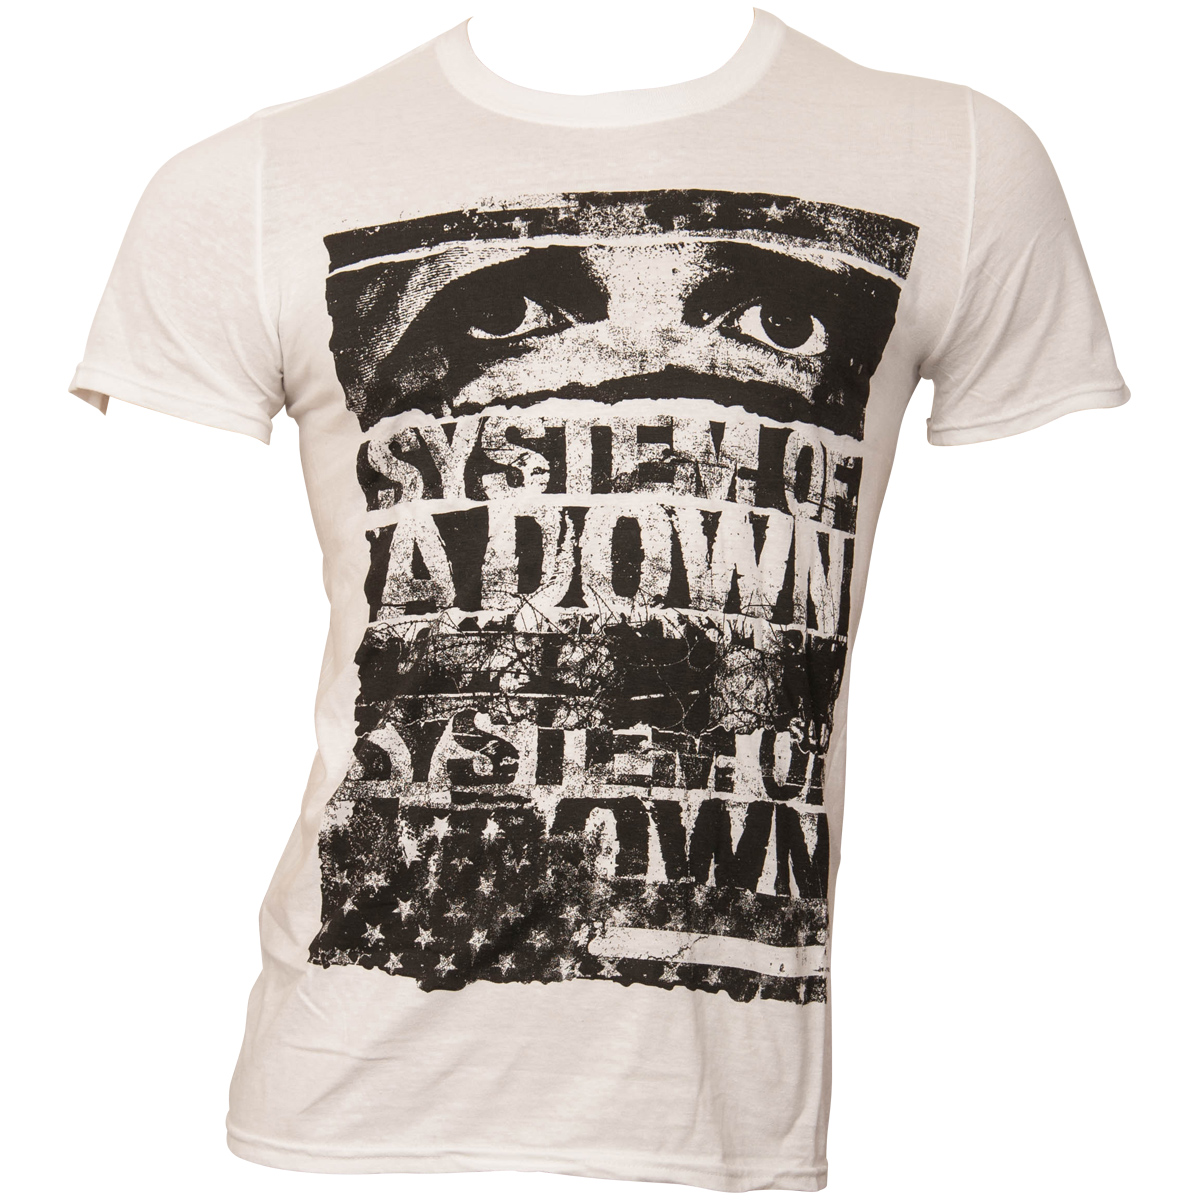 System Of A Down - T-Shirt Torn - weiß